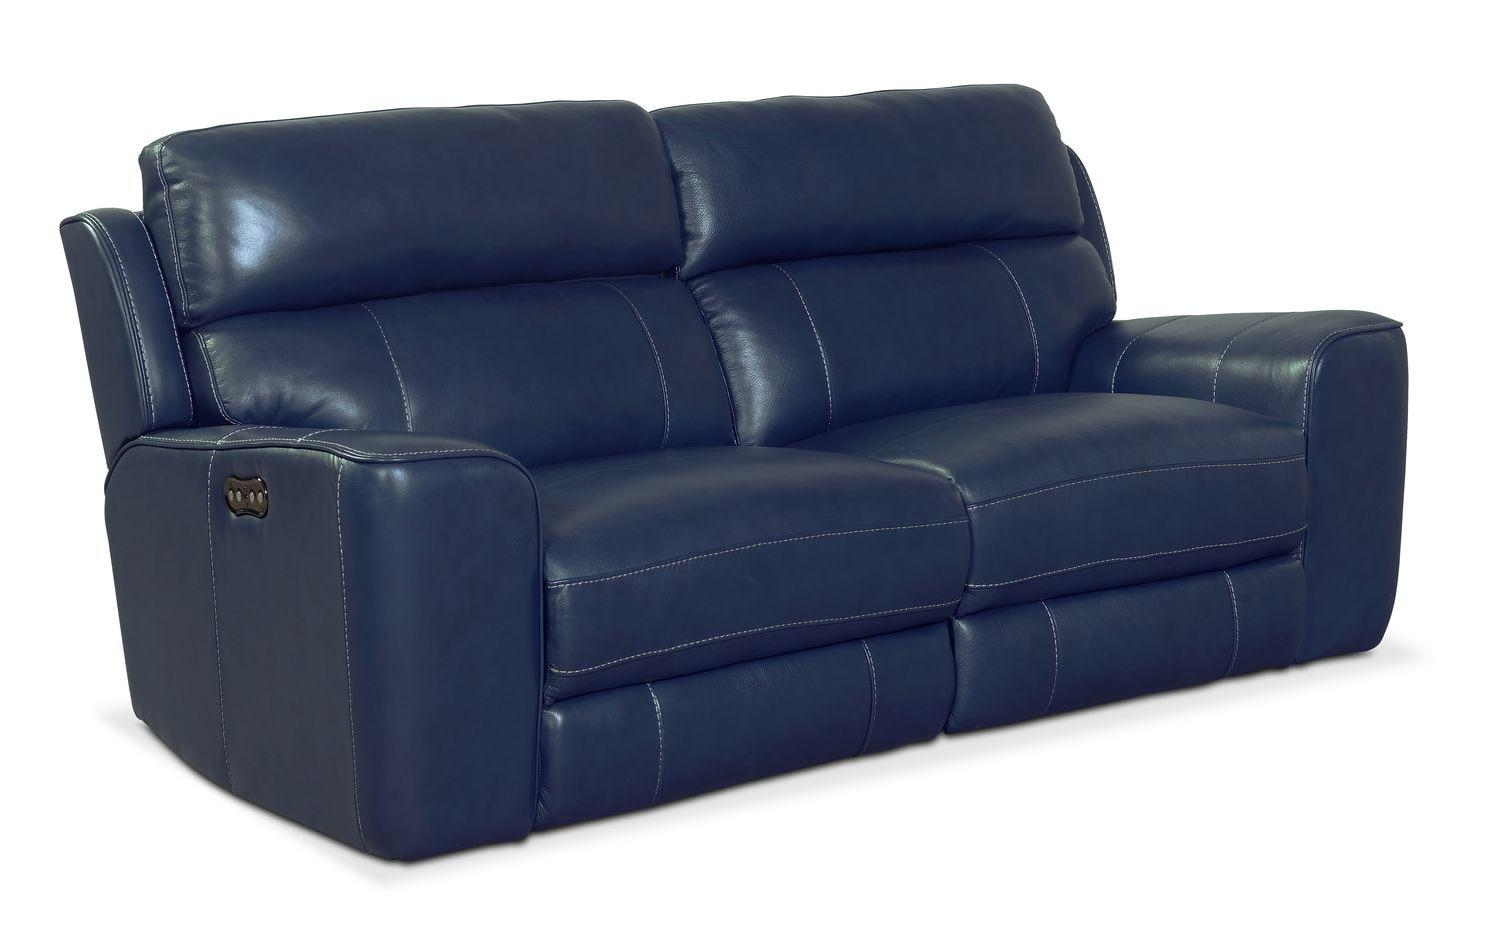 Newport 2 Piece Power Reclining Sofa – Blue | Value City Furniture Pertaining To Newport Sofas (View 4 of 20)